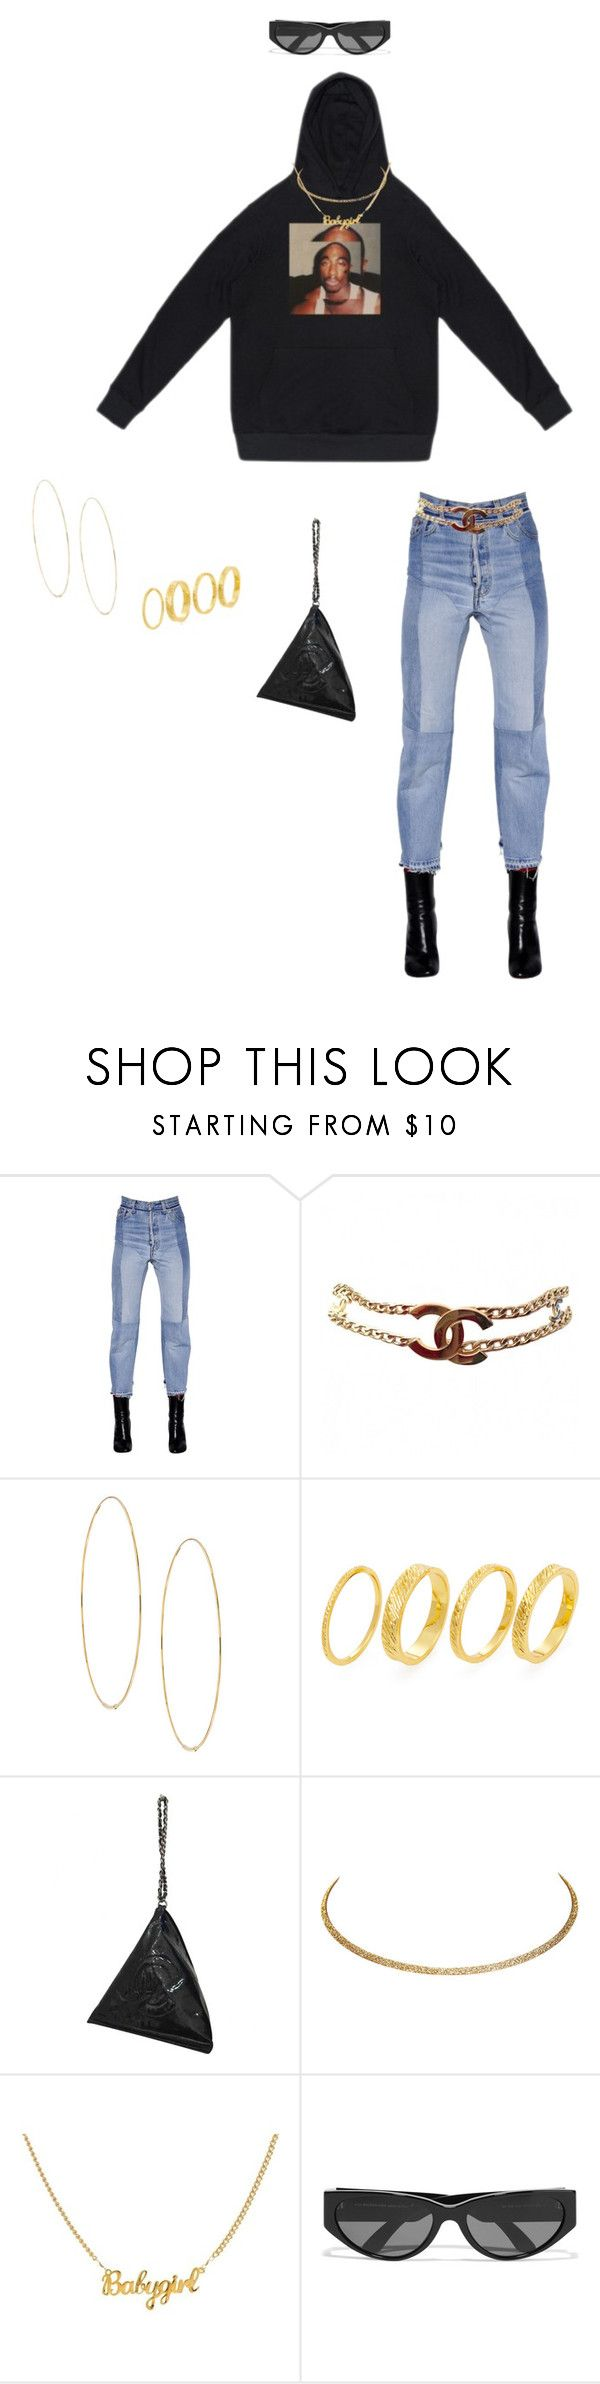 """Untitled #320"" by cymonejanae ❤ liked on Polyvore featuring Vetements, Chanel, Lana, Gorjana, Wet Seal and Balenciaga"